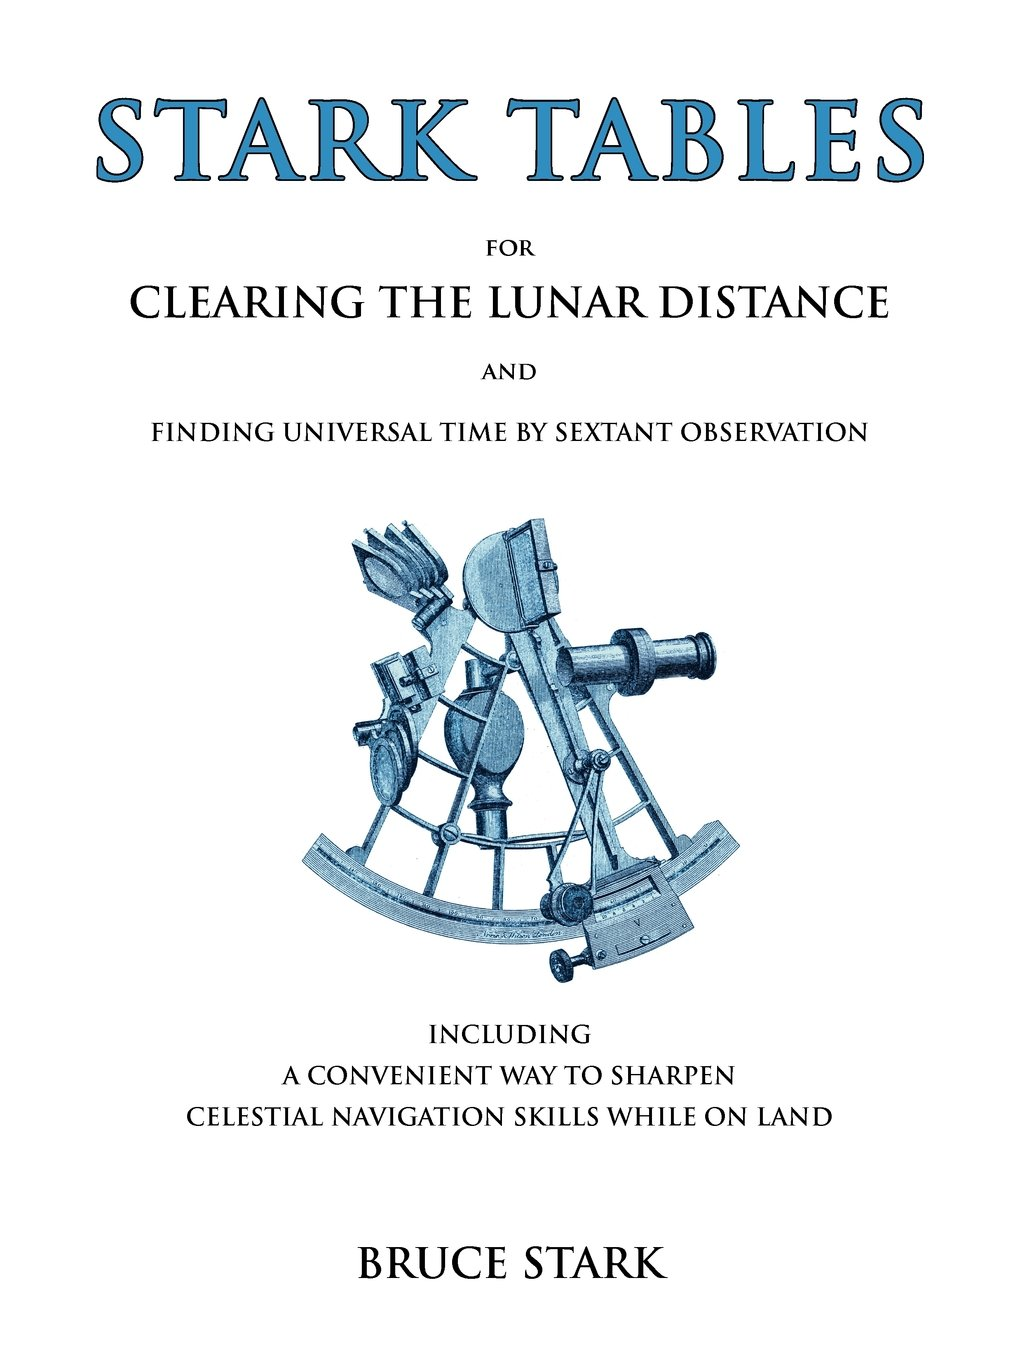 Stark Tables: For Clearing the Lunar Distance and Finding Universal Time by Sextant Observation Including a Convenient Way to Sharpe